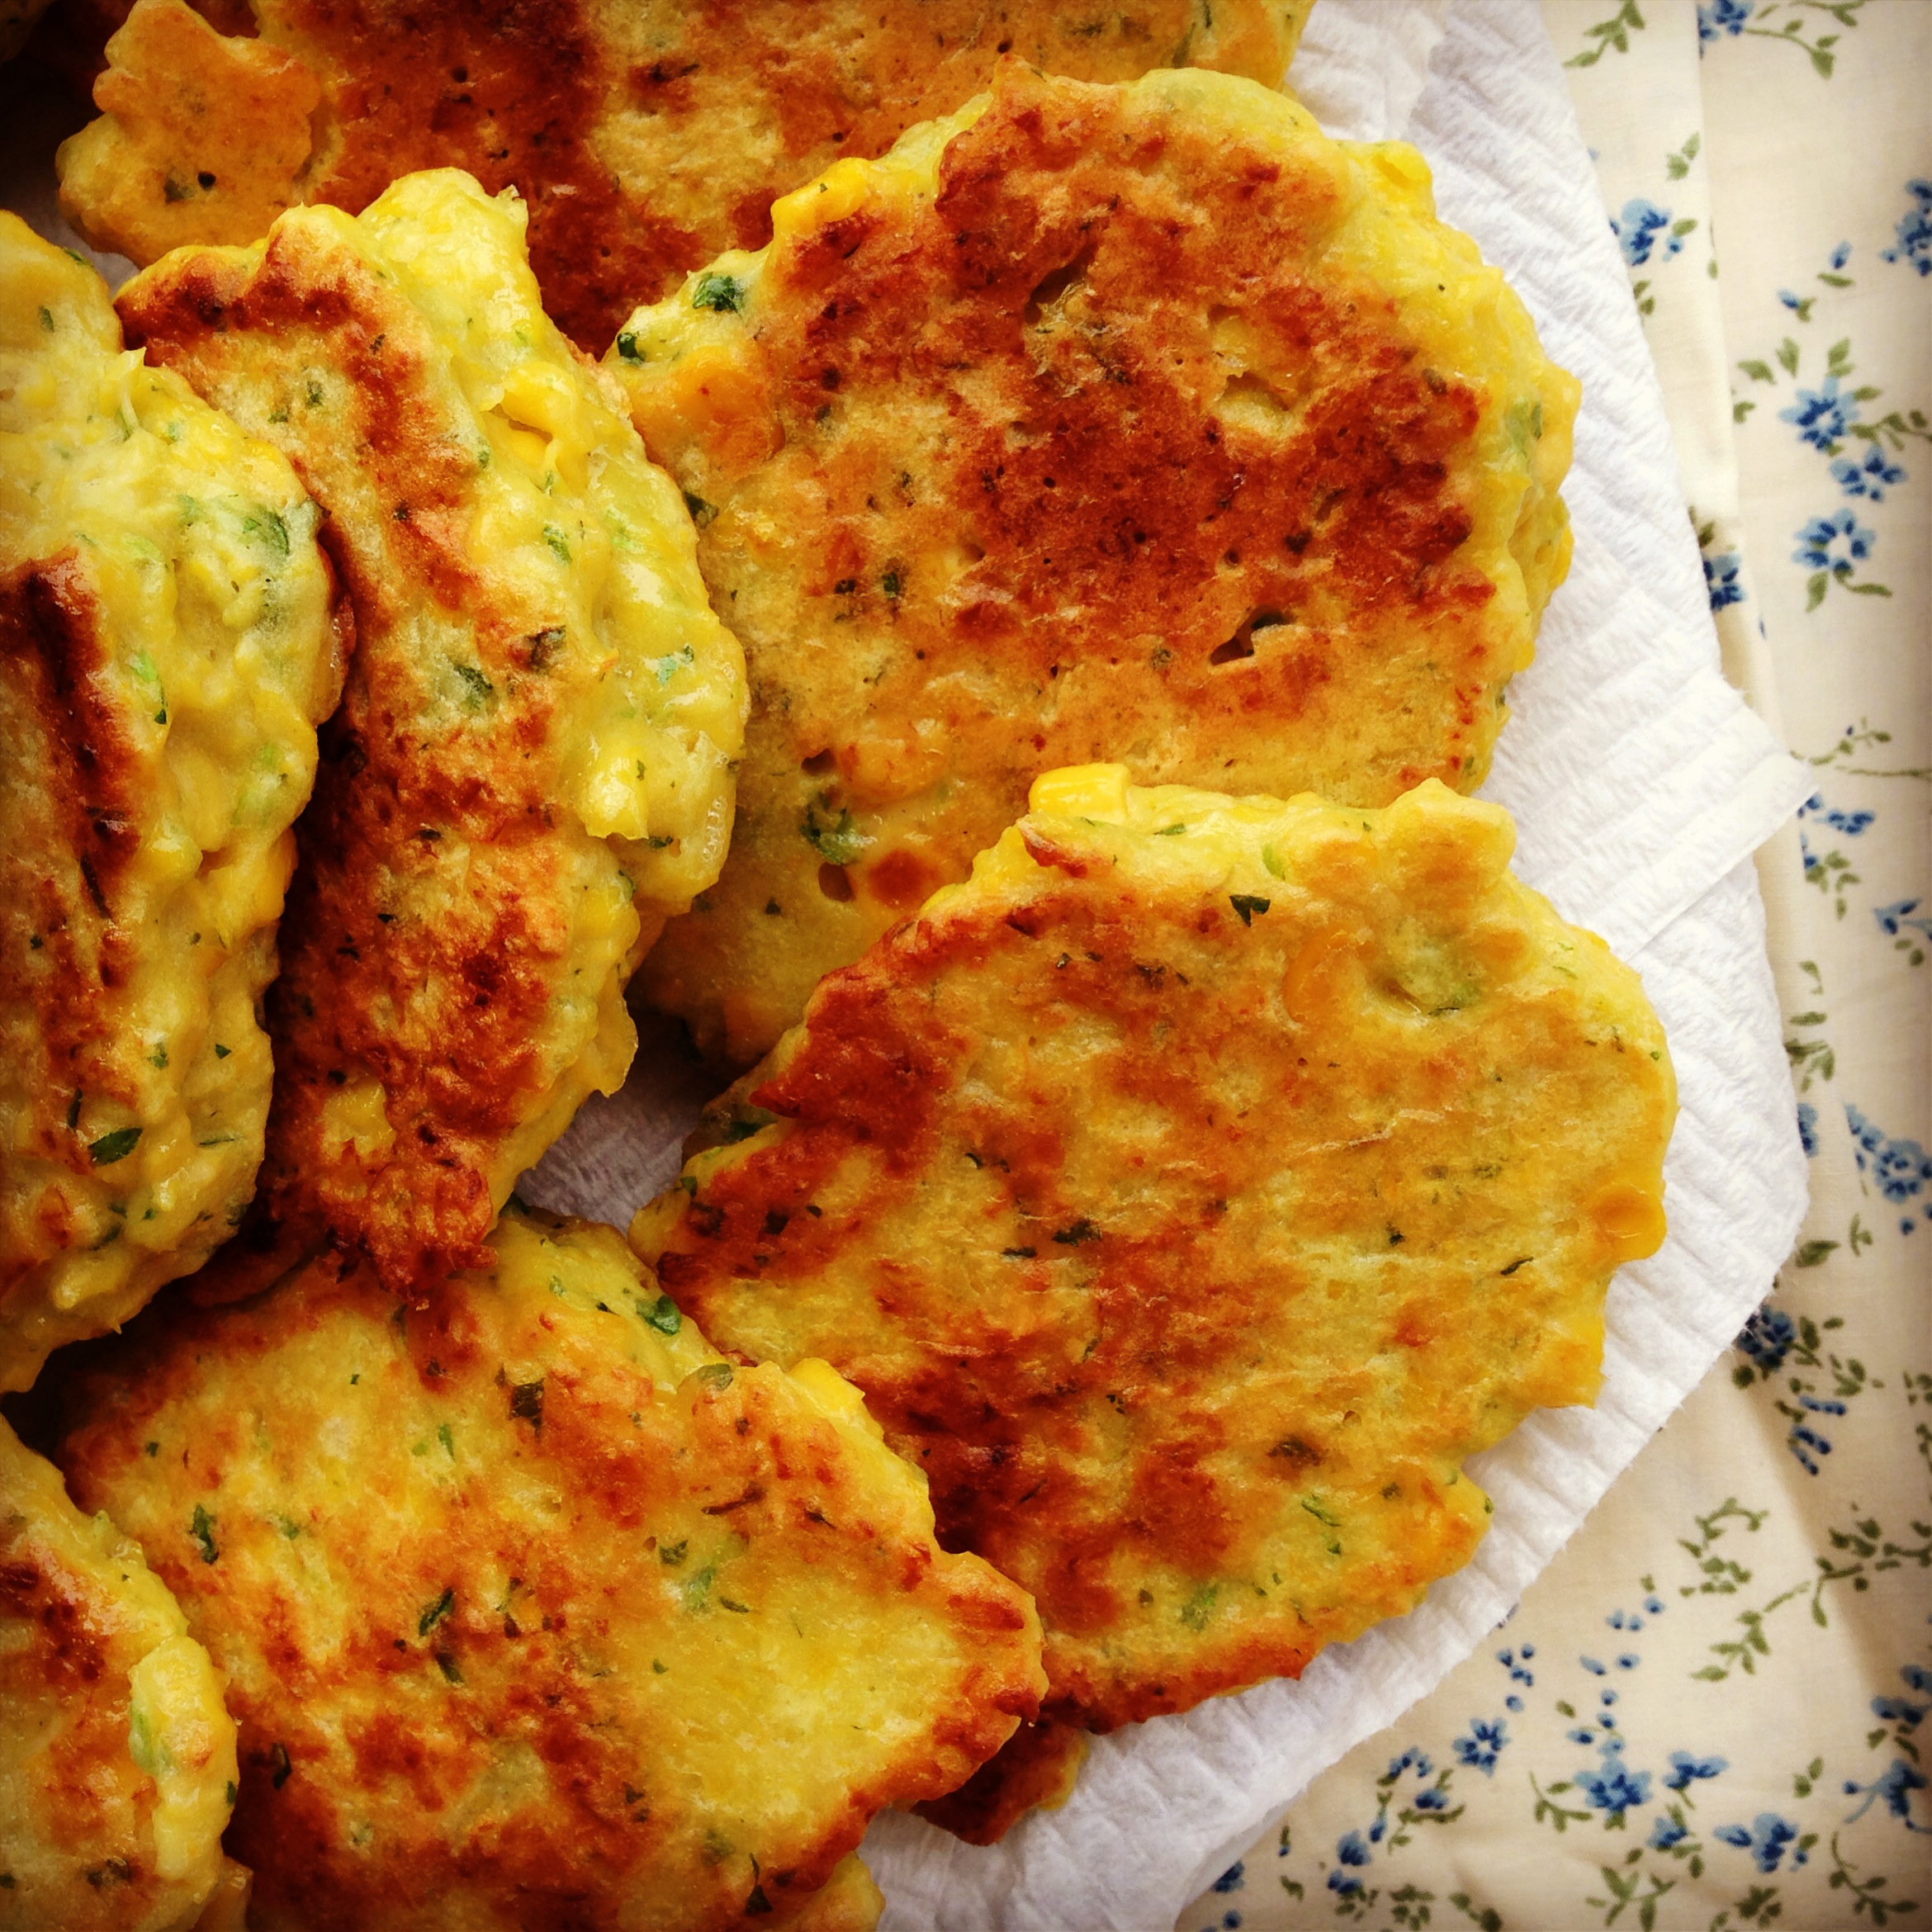 sweetcorn fritters - my lovely little lunch box